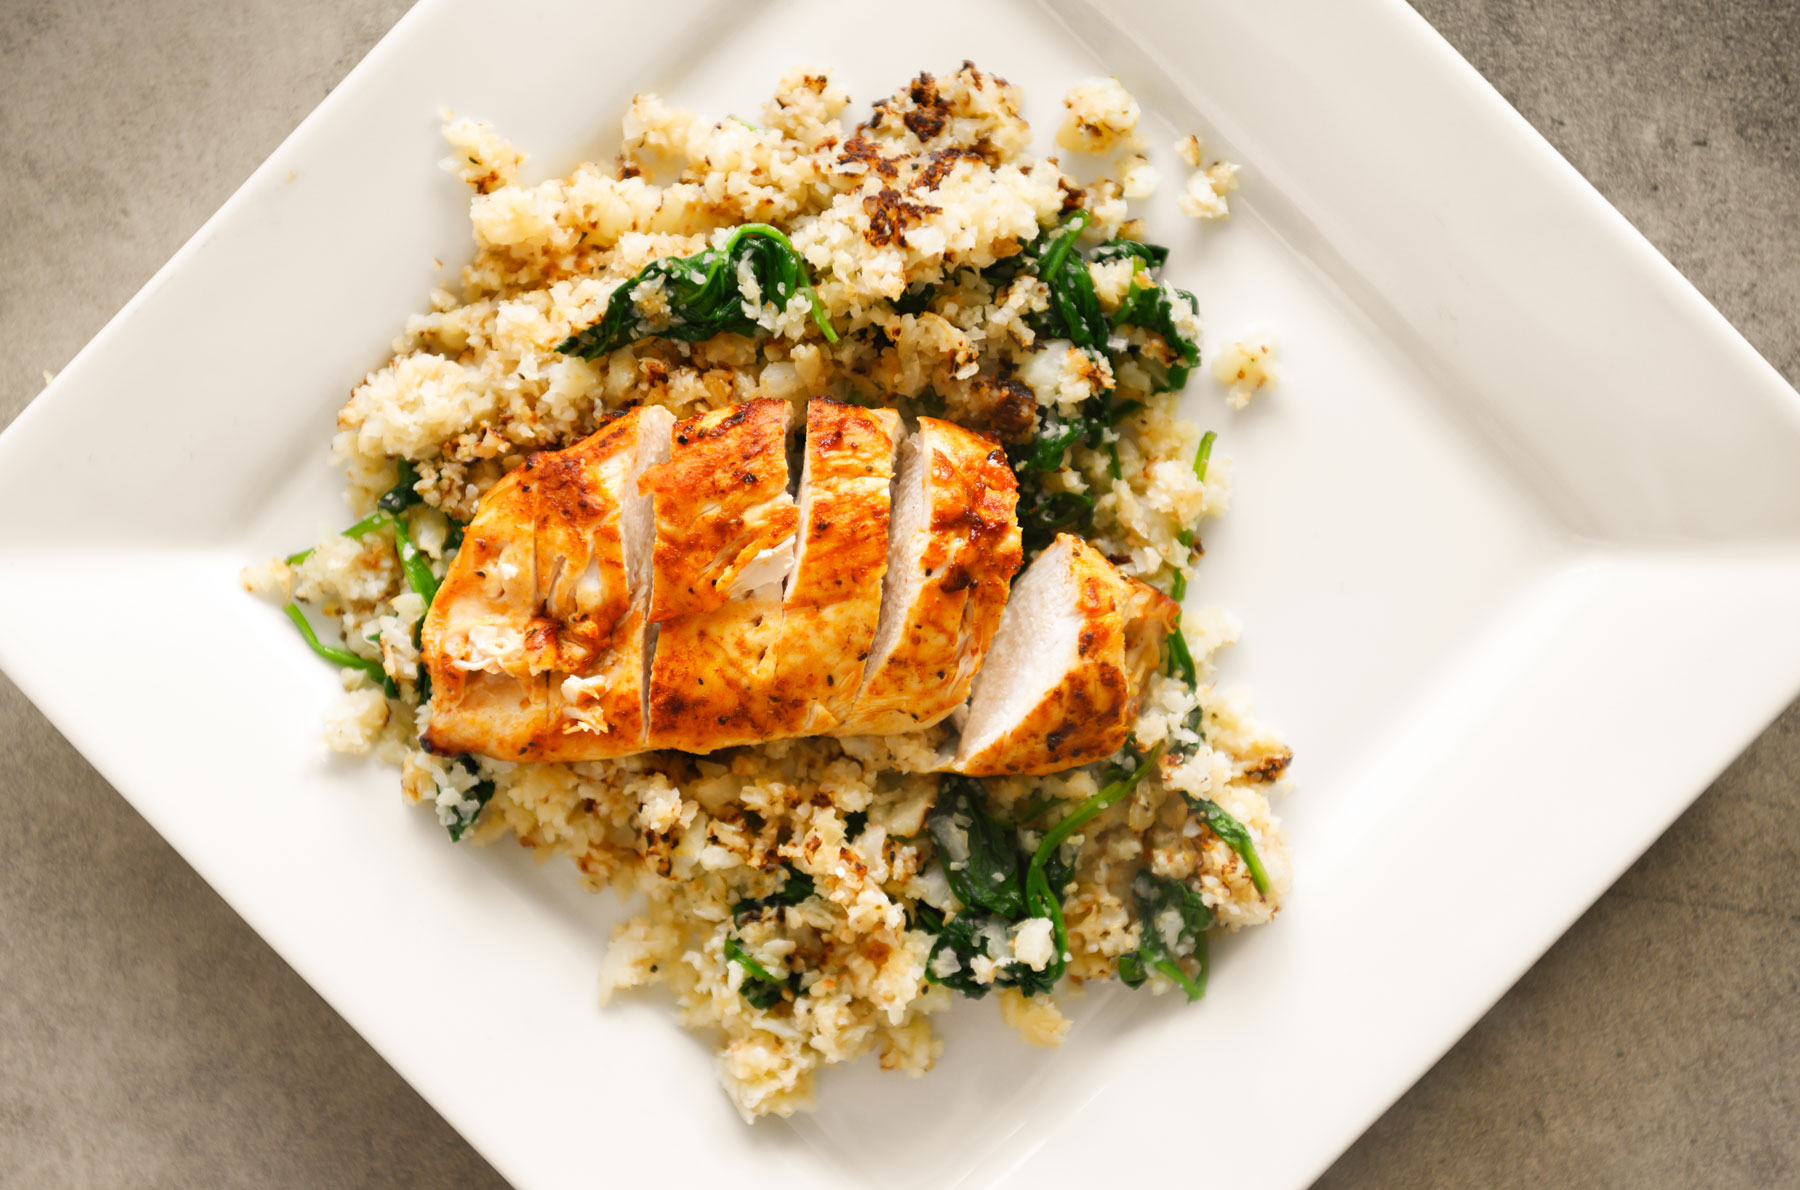 Sliced chicken resting on a bed of cauliflower rice.